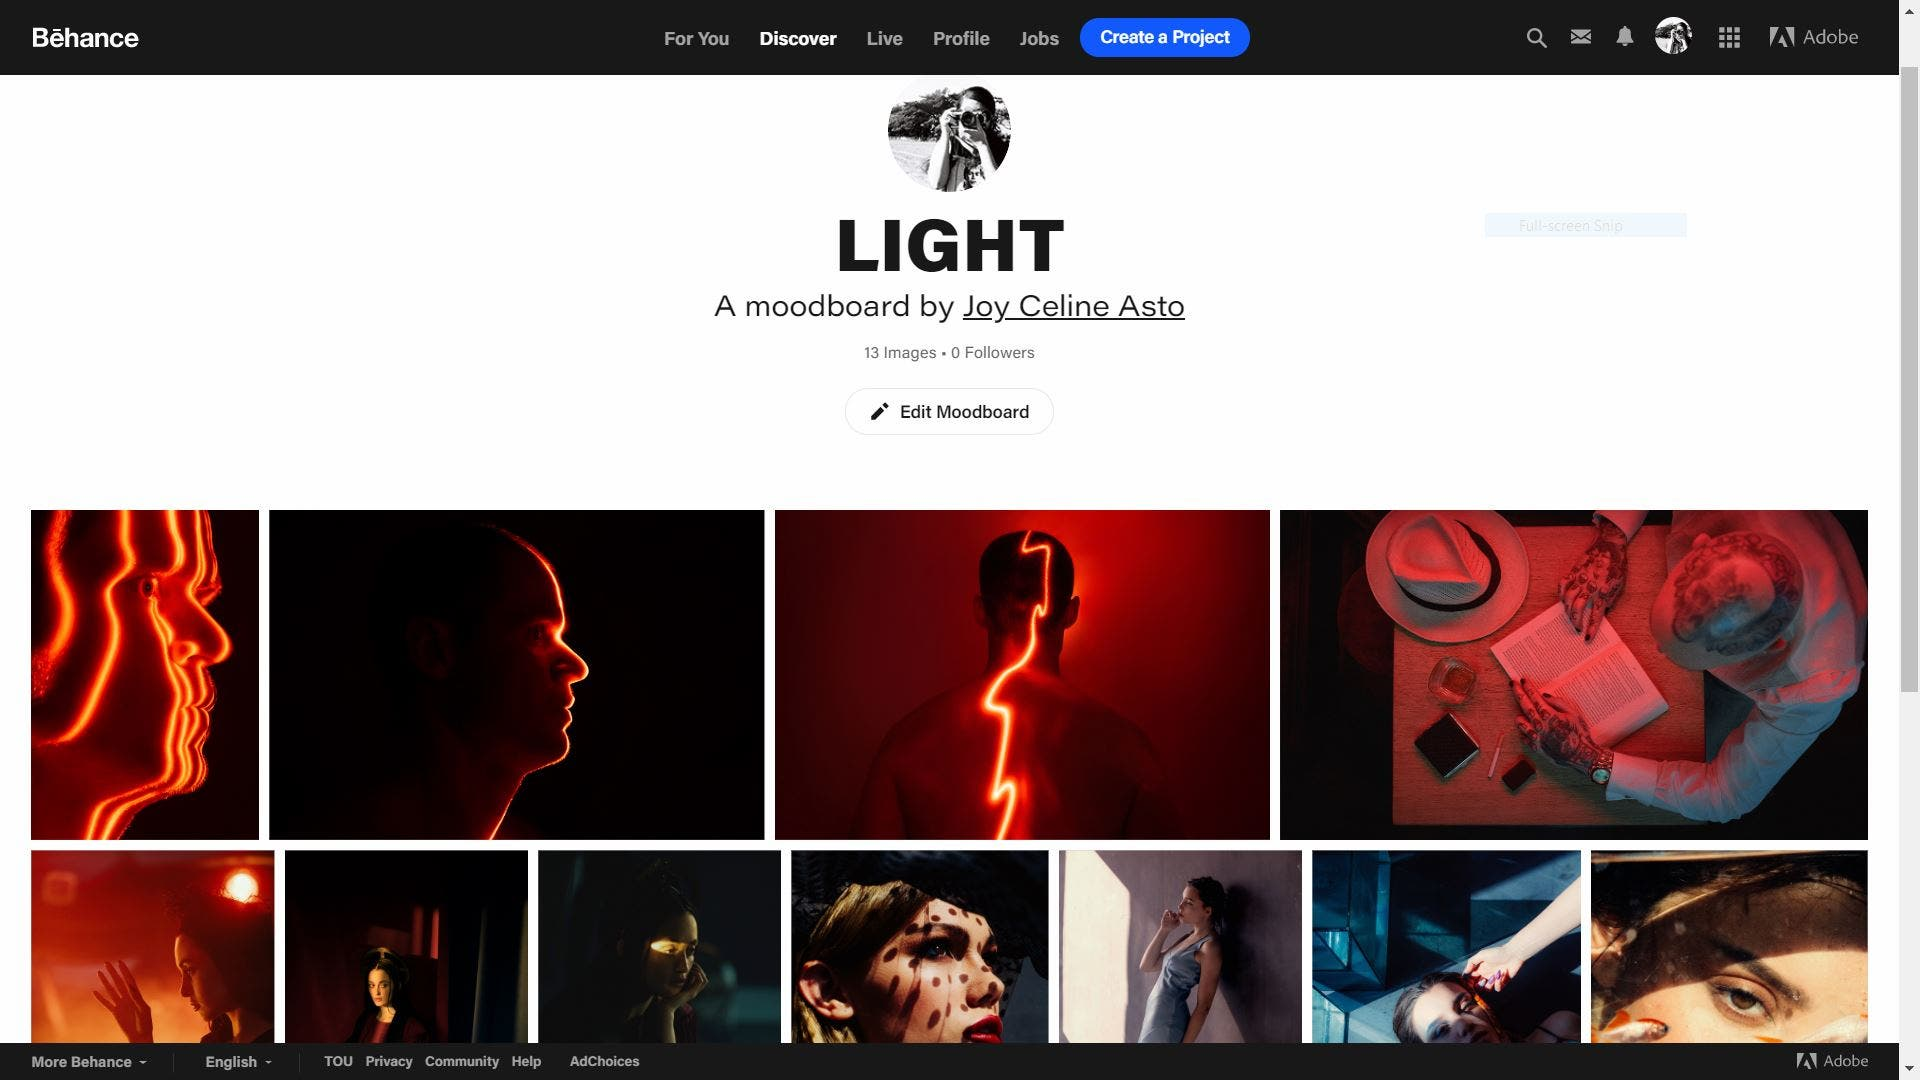 Behance's Moodboard Feature is an Ethical Alternative to Pinterest